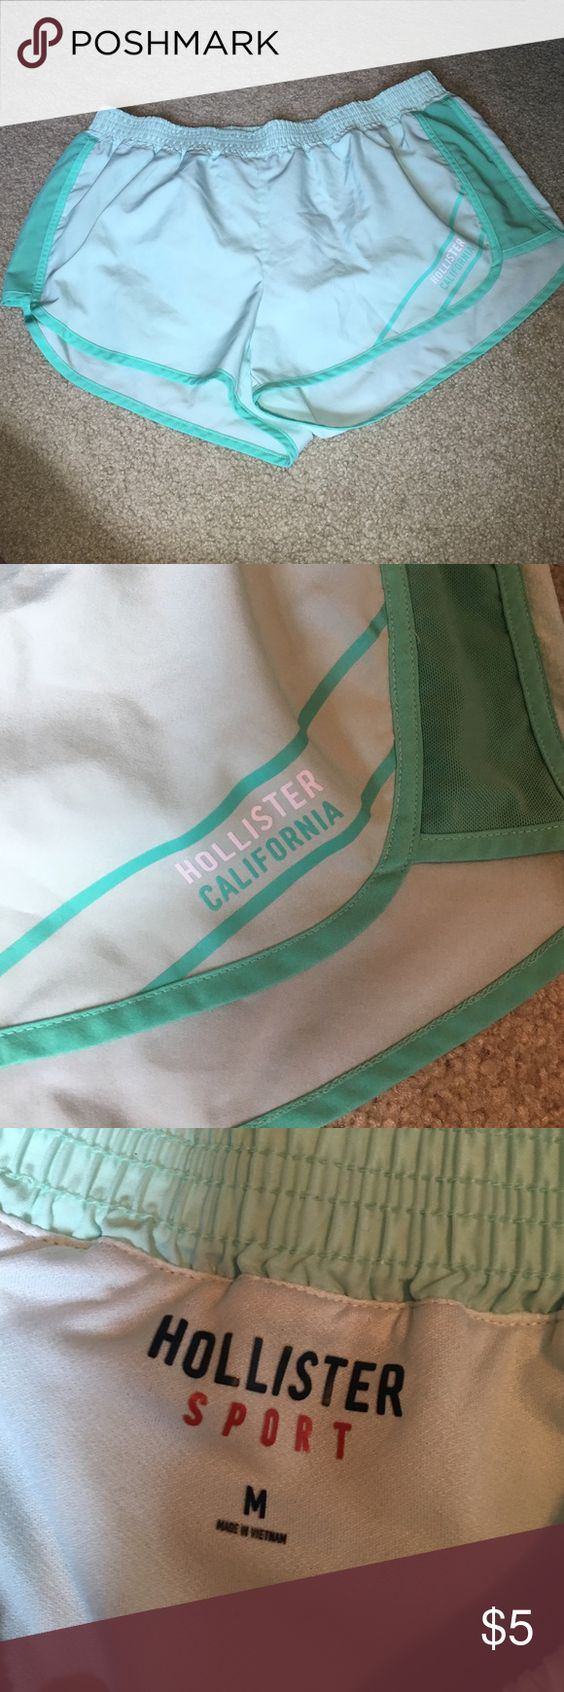 Hollister size M sport shorts Hollister green running shorts. Used but in great condition Hollister Shorts